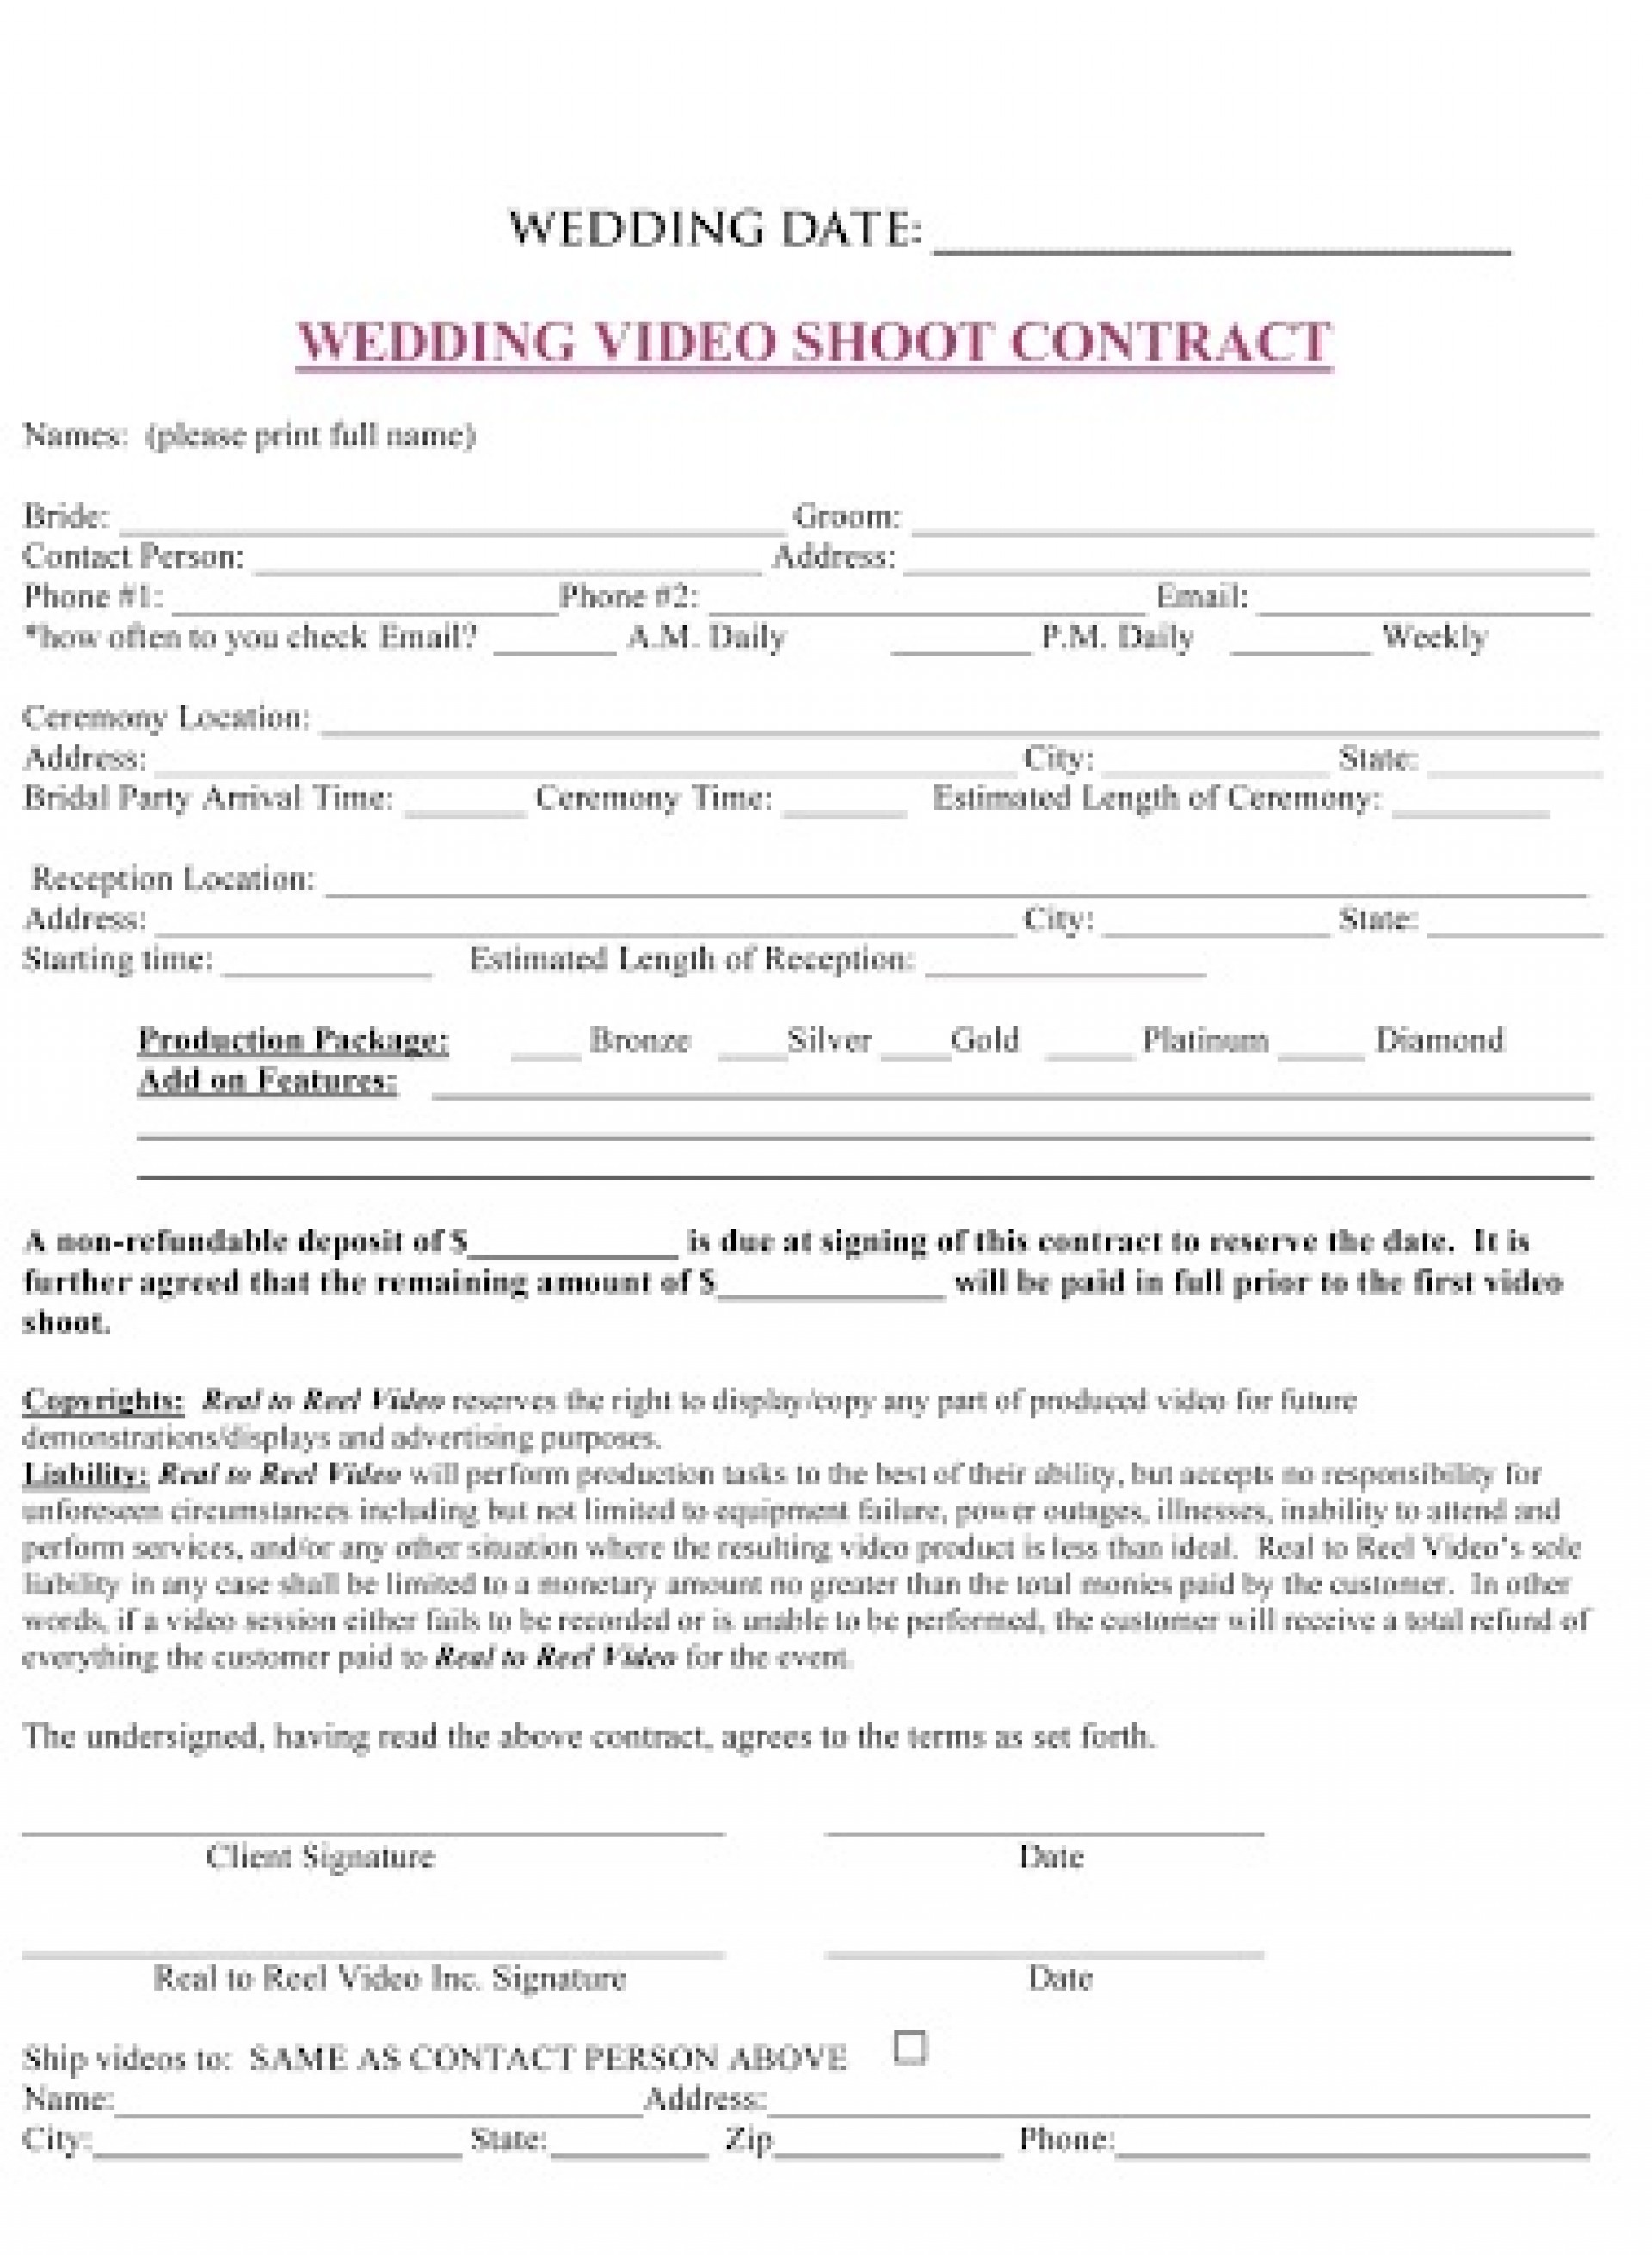 009 Sensational Wedding Videography Contract Template Concept  Free1920